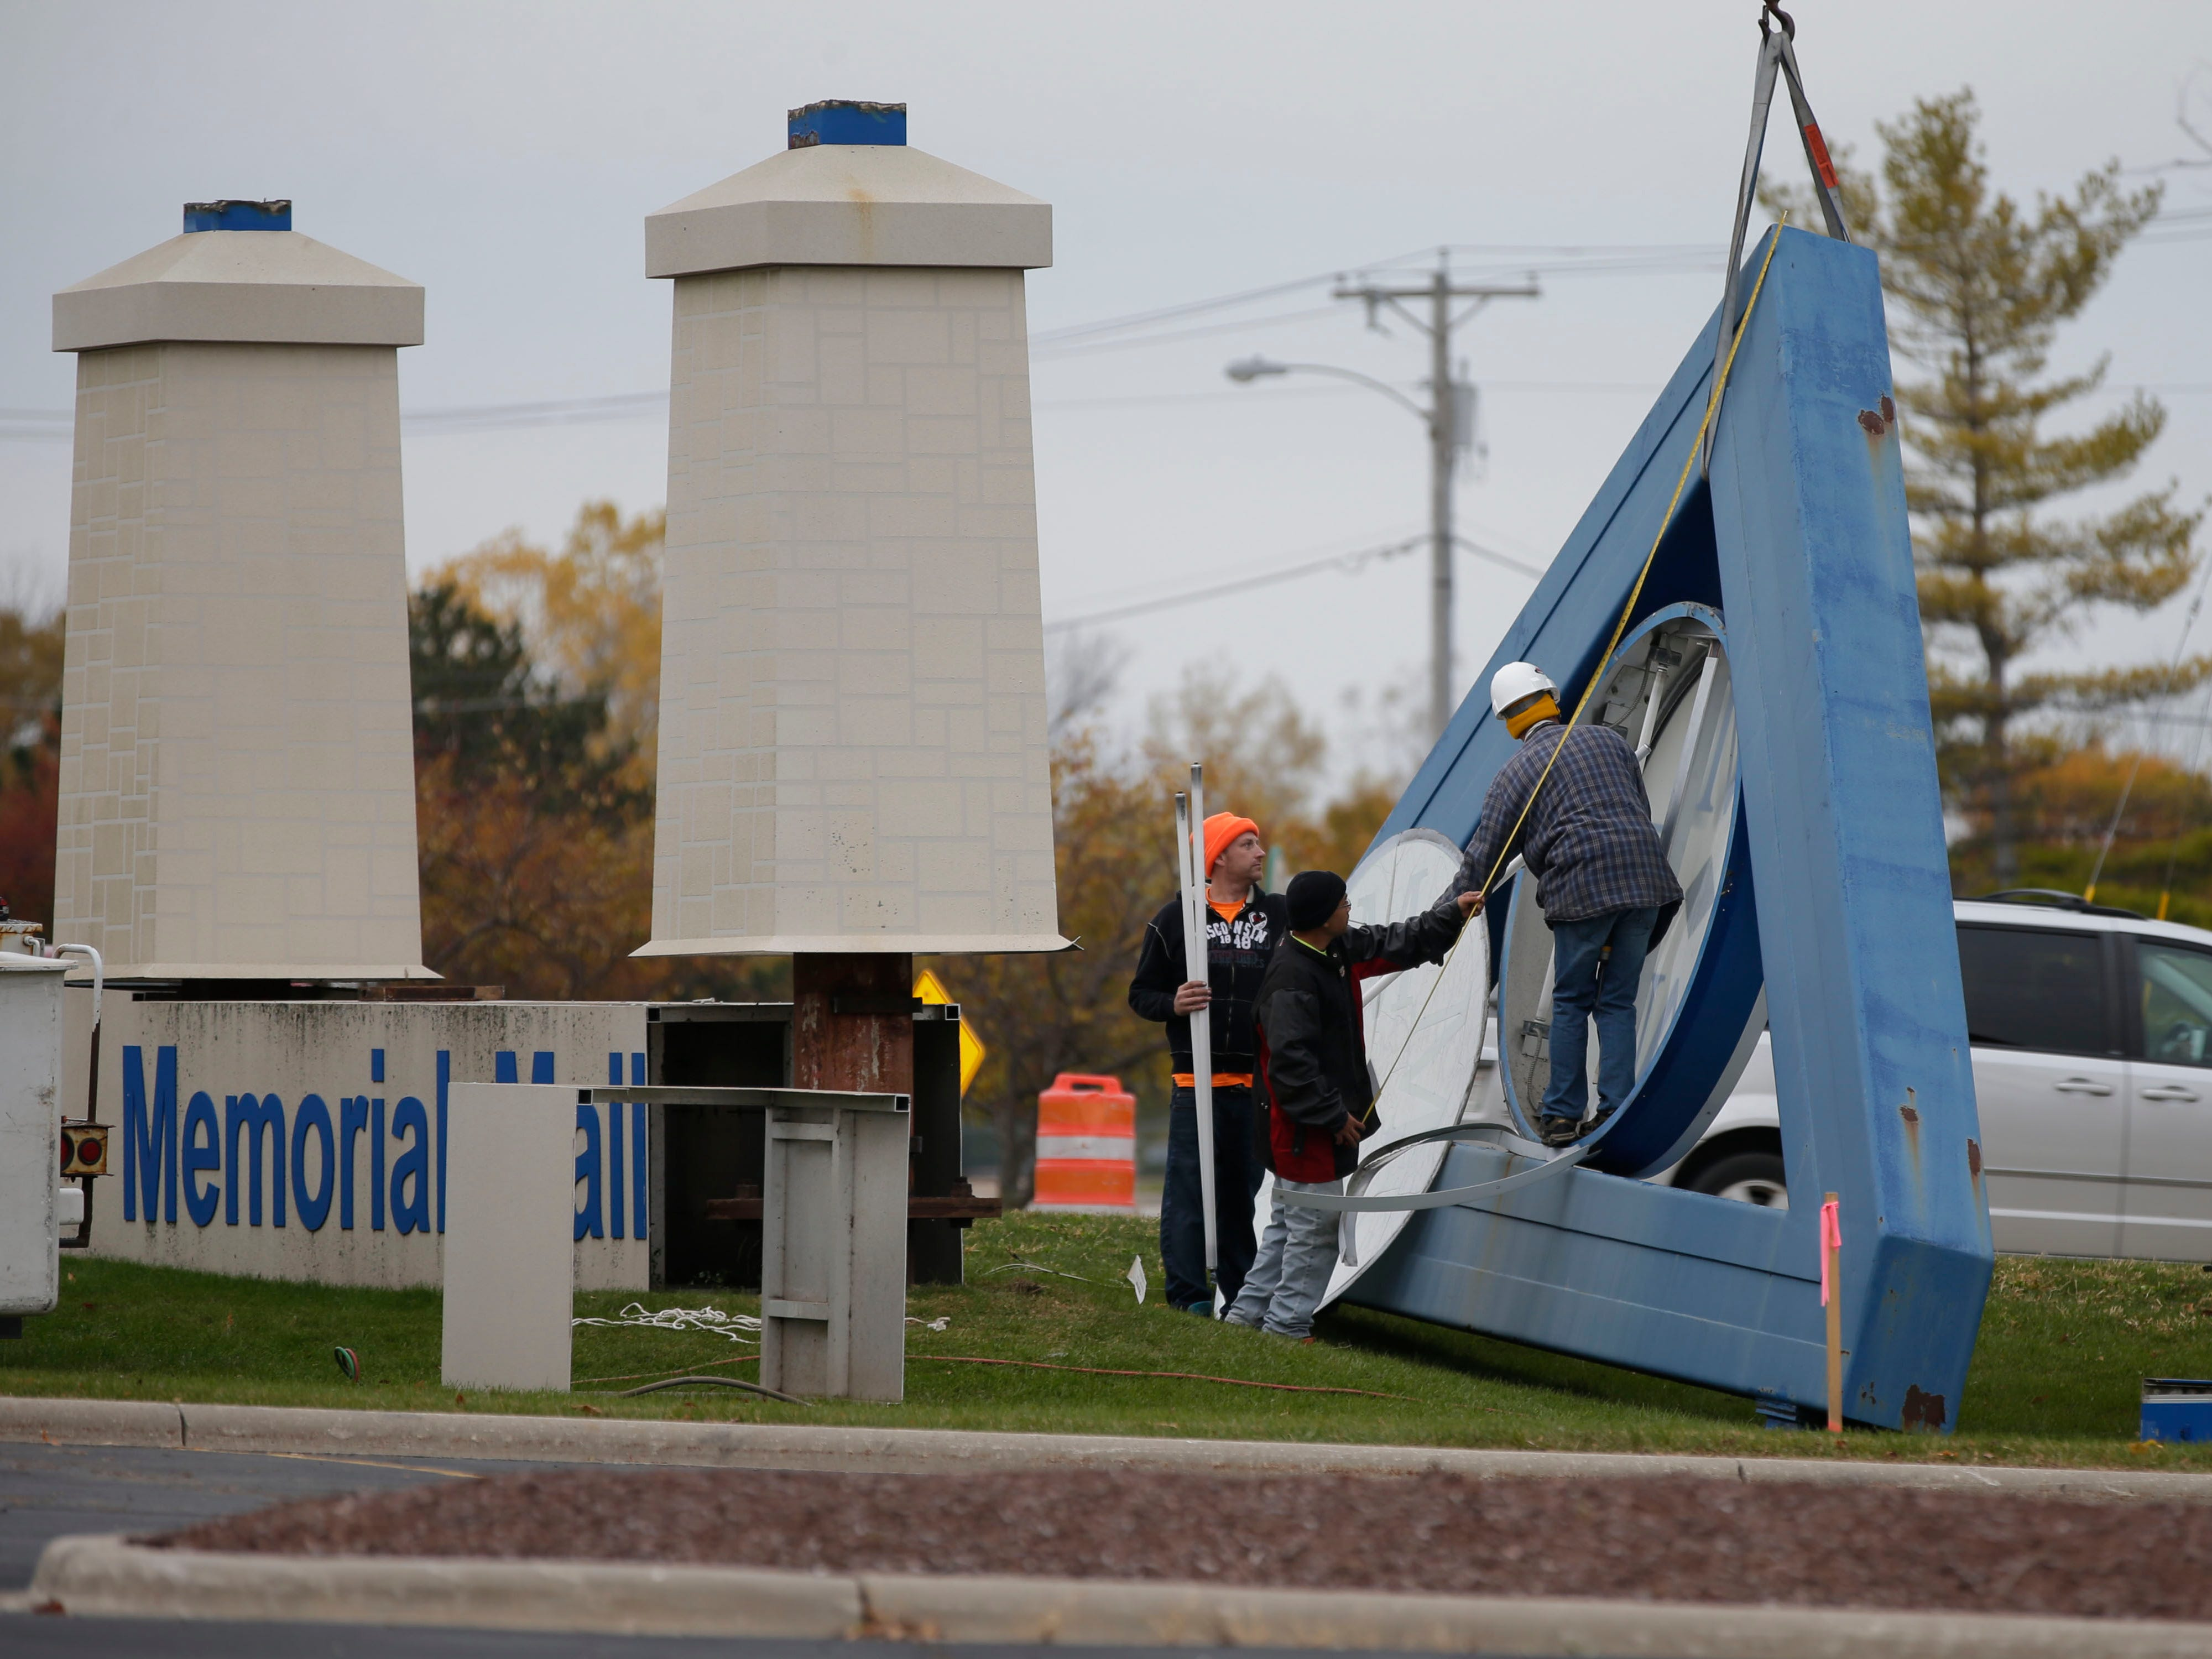 RLO Sign employees dismantle the old Sheboygan Memorial Mall sign, Friday, October 26, 2018, in Sheboygan, Wis. A new sign by Meijers is replacing the sign.